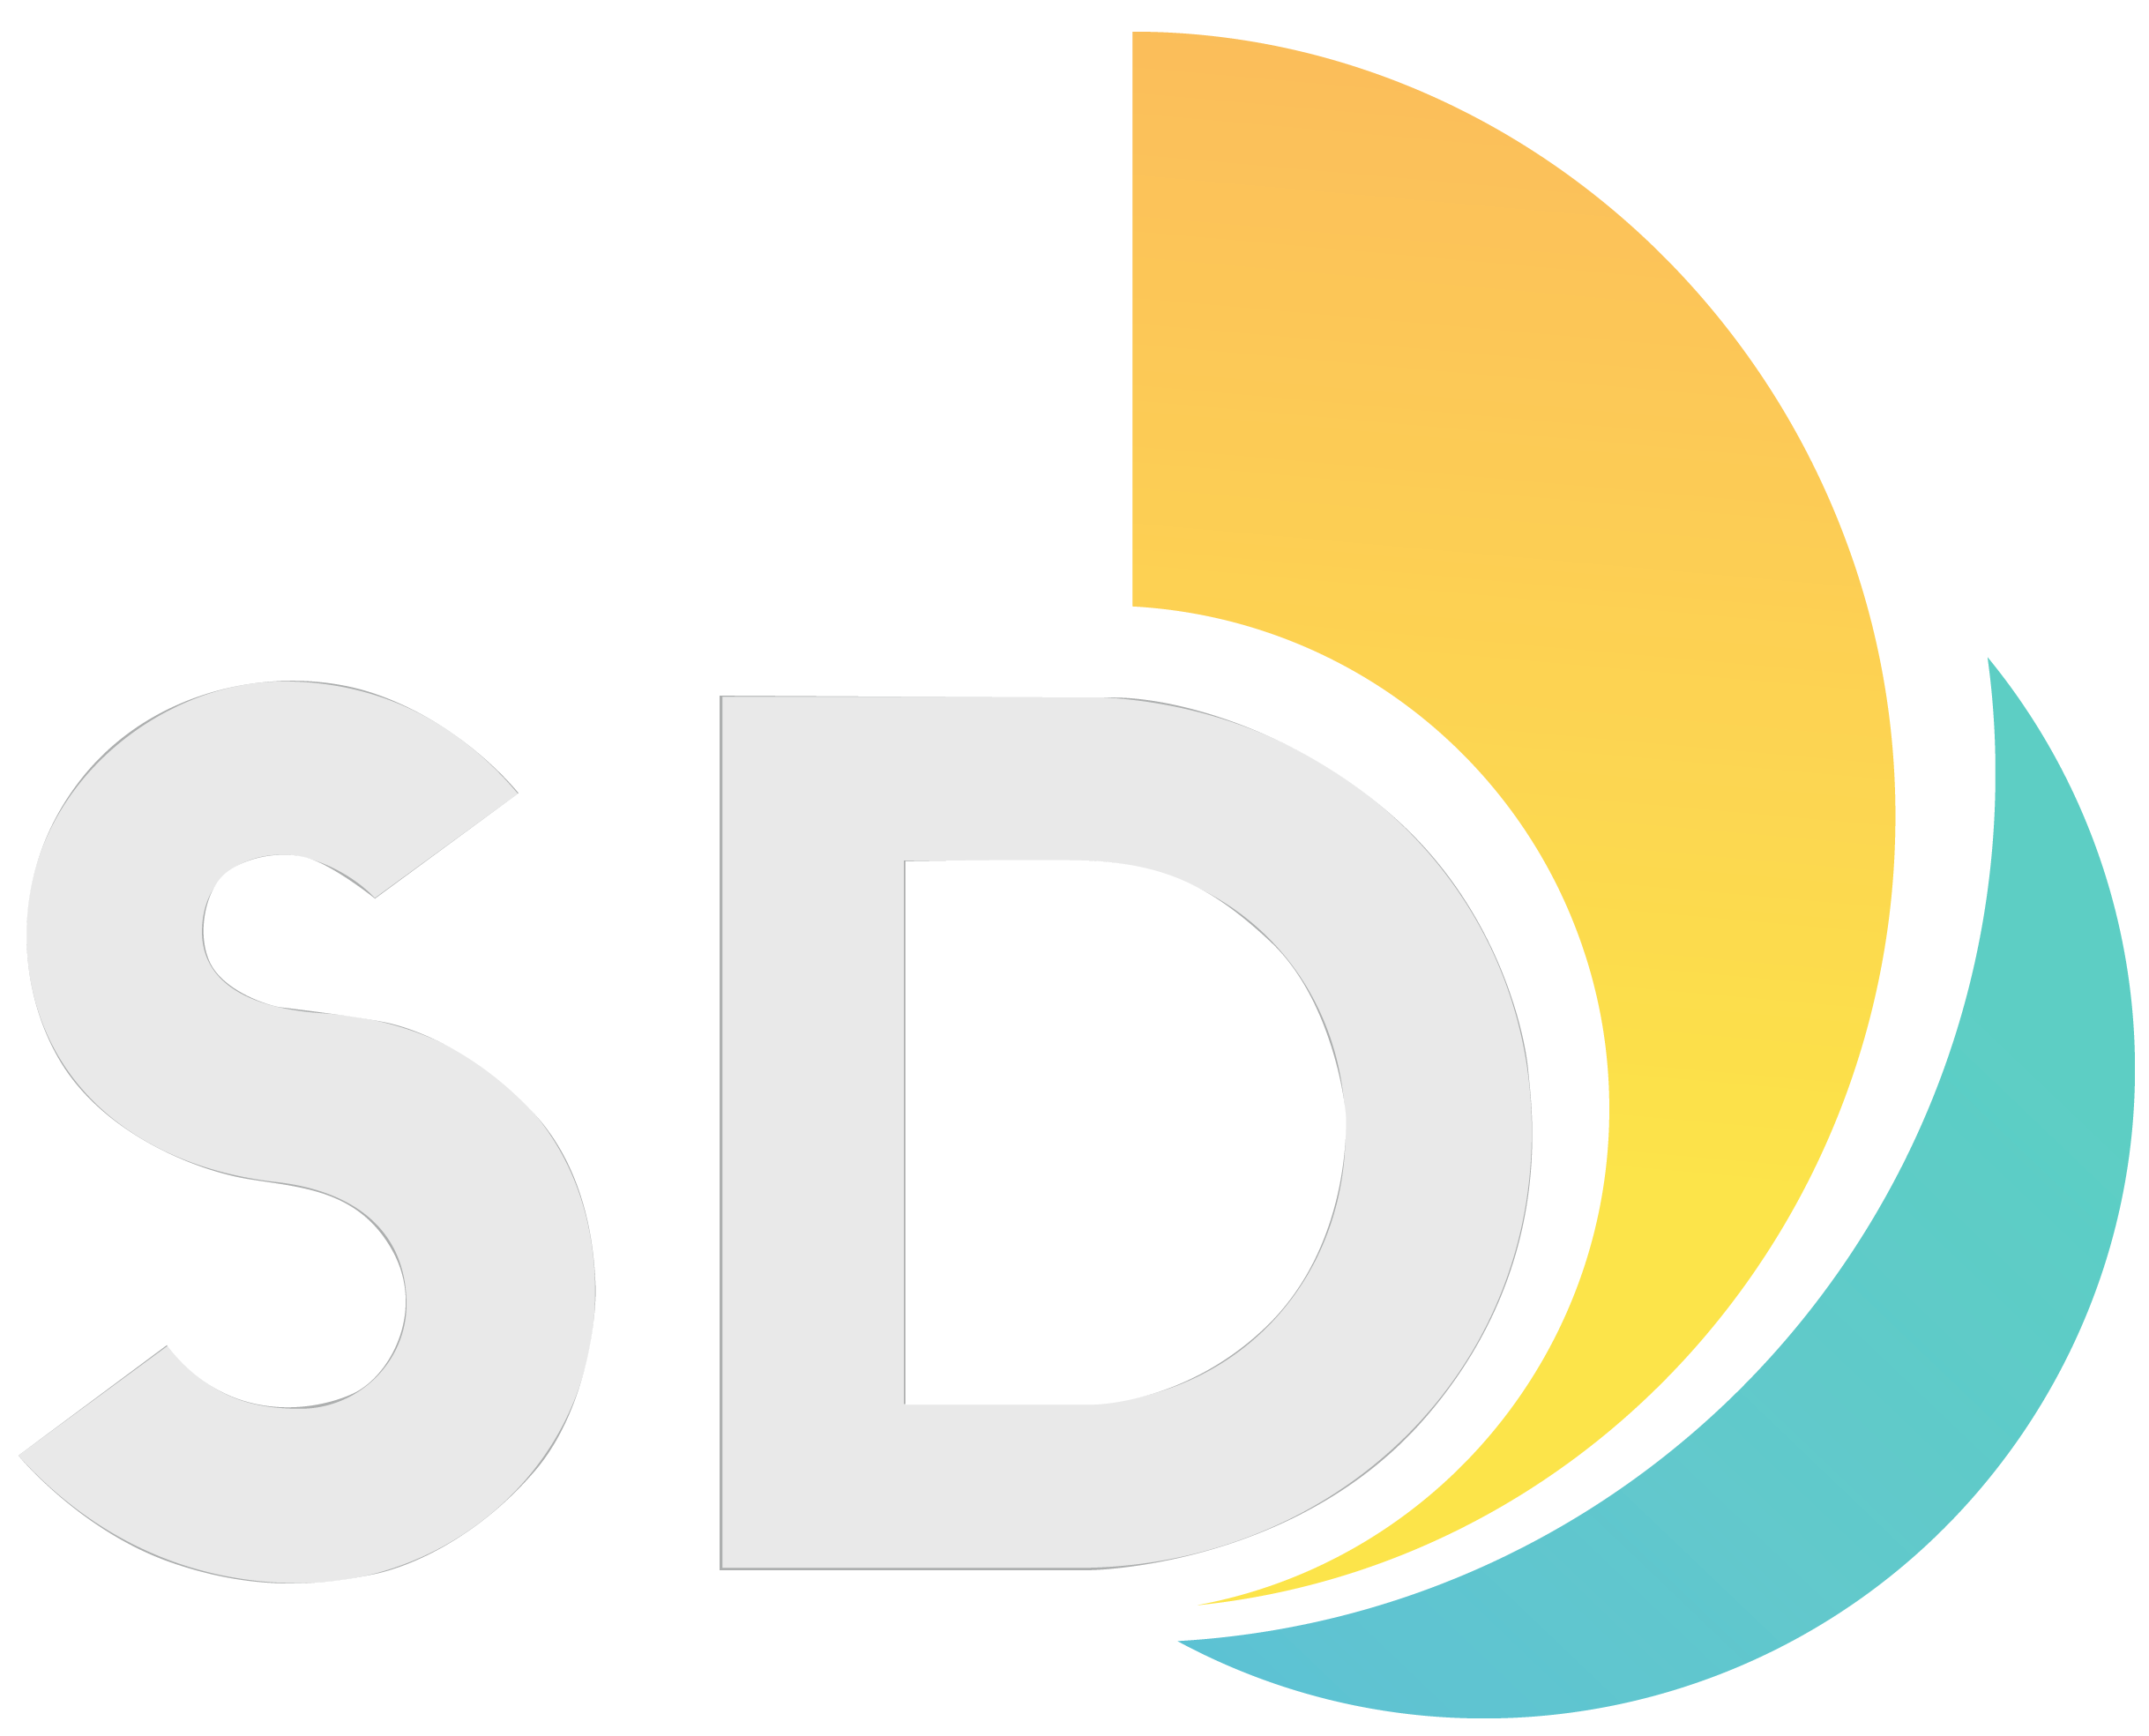 Datasets - City of San Diego Open Data Portal